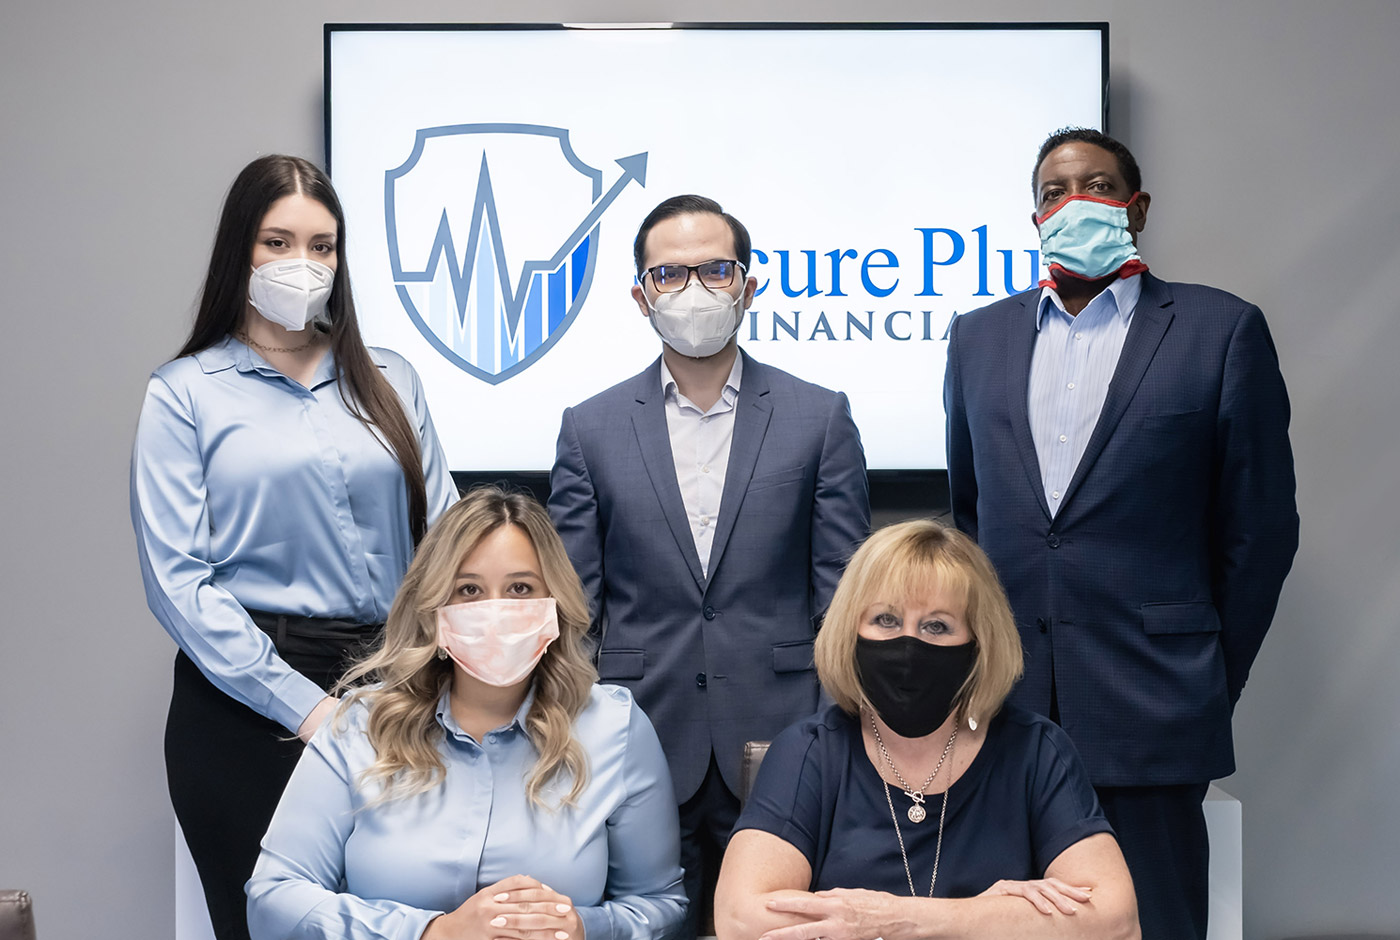 The Secure Plus Financial Team Attending a Business Consulting Services Meeting